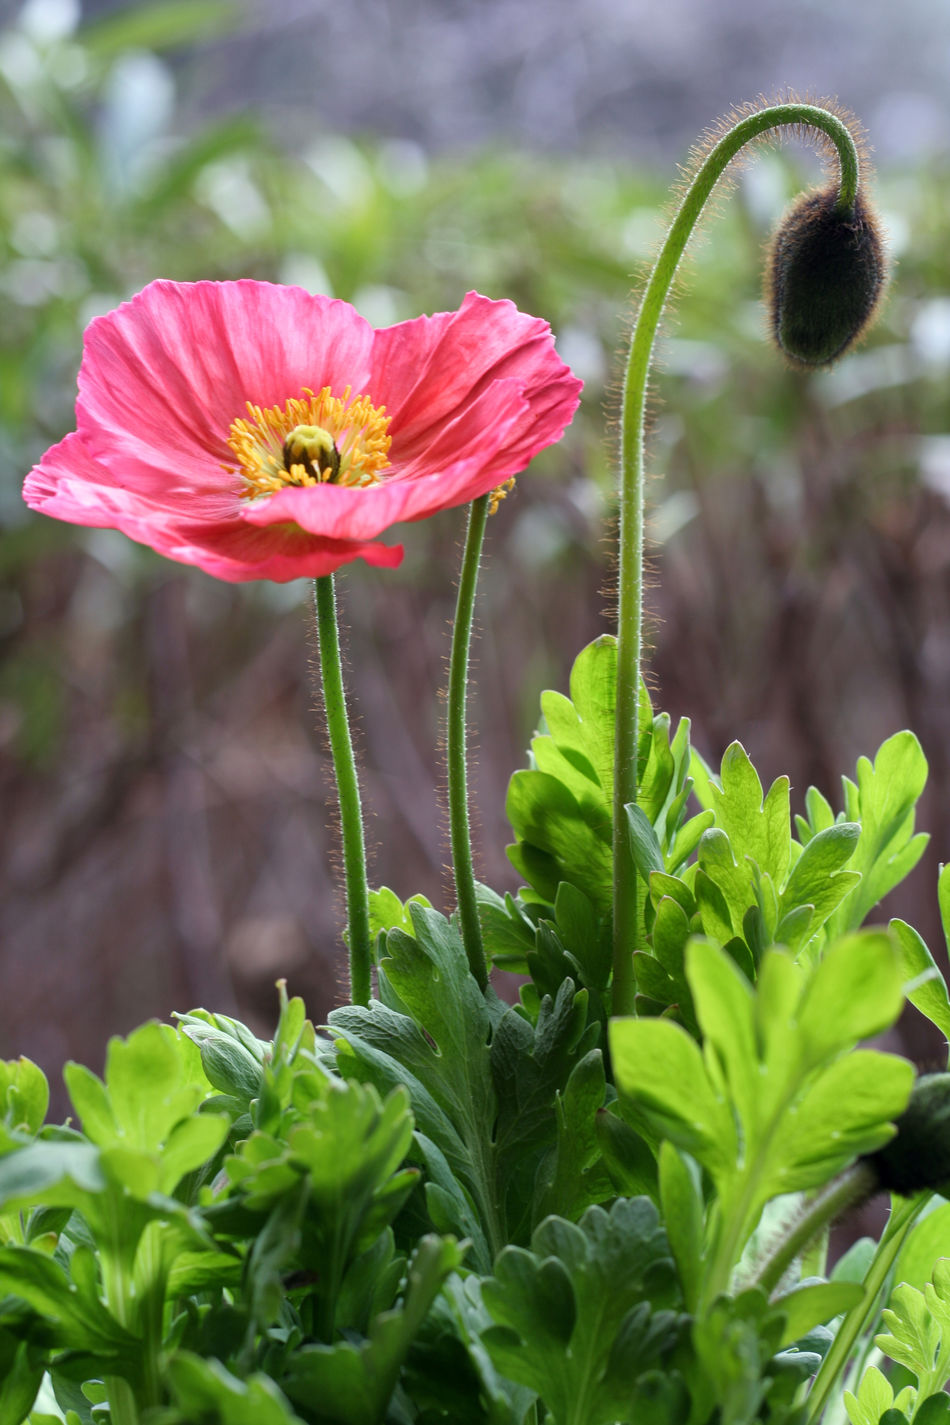 Beauty In Nature Blooming Close-up Day Flower Flower Head Focus On Foreground Fragility Freshness Green Color Growth Hibiscus Leaf Nature No People Outdoors Petal Pink Color Plant Poppi Poppies  Red Color Red Flower